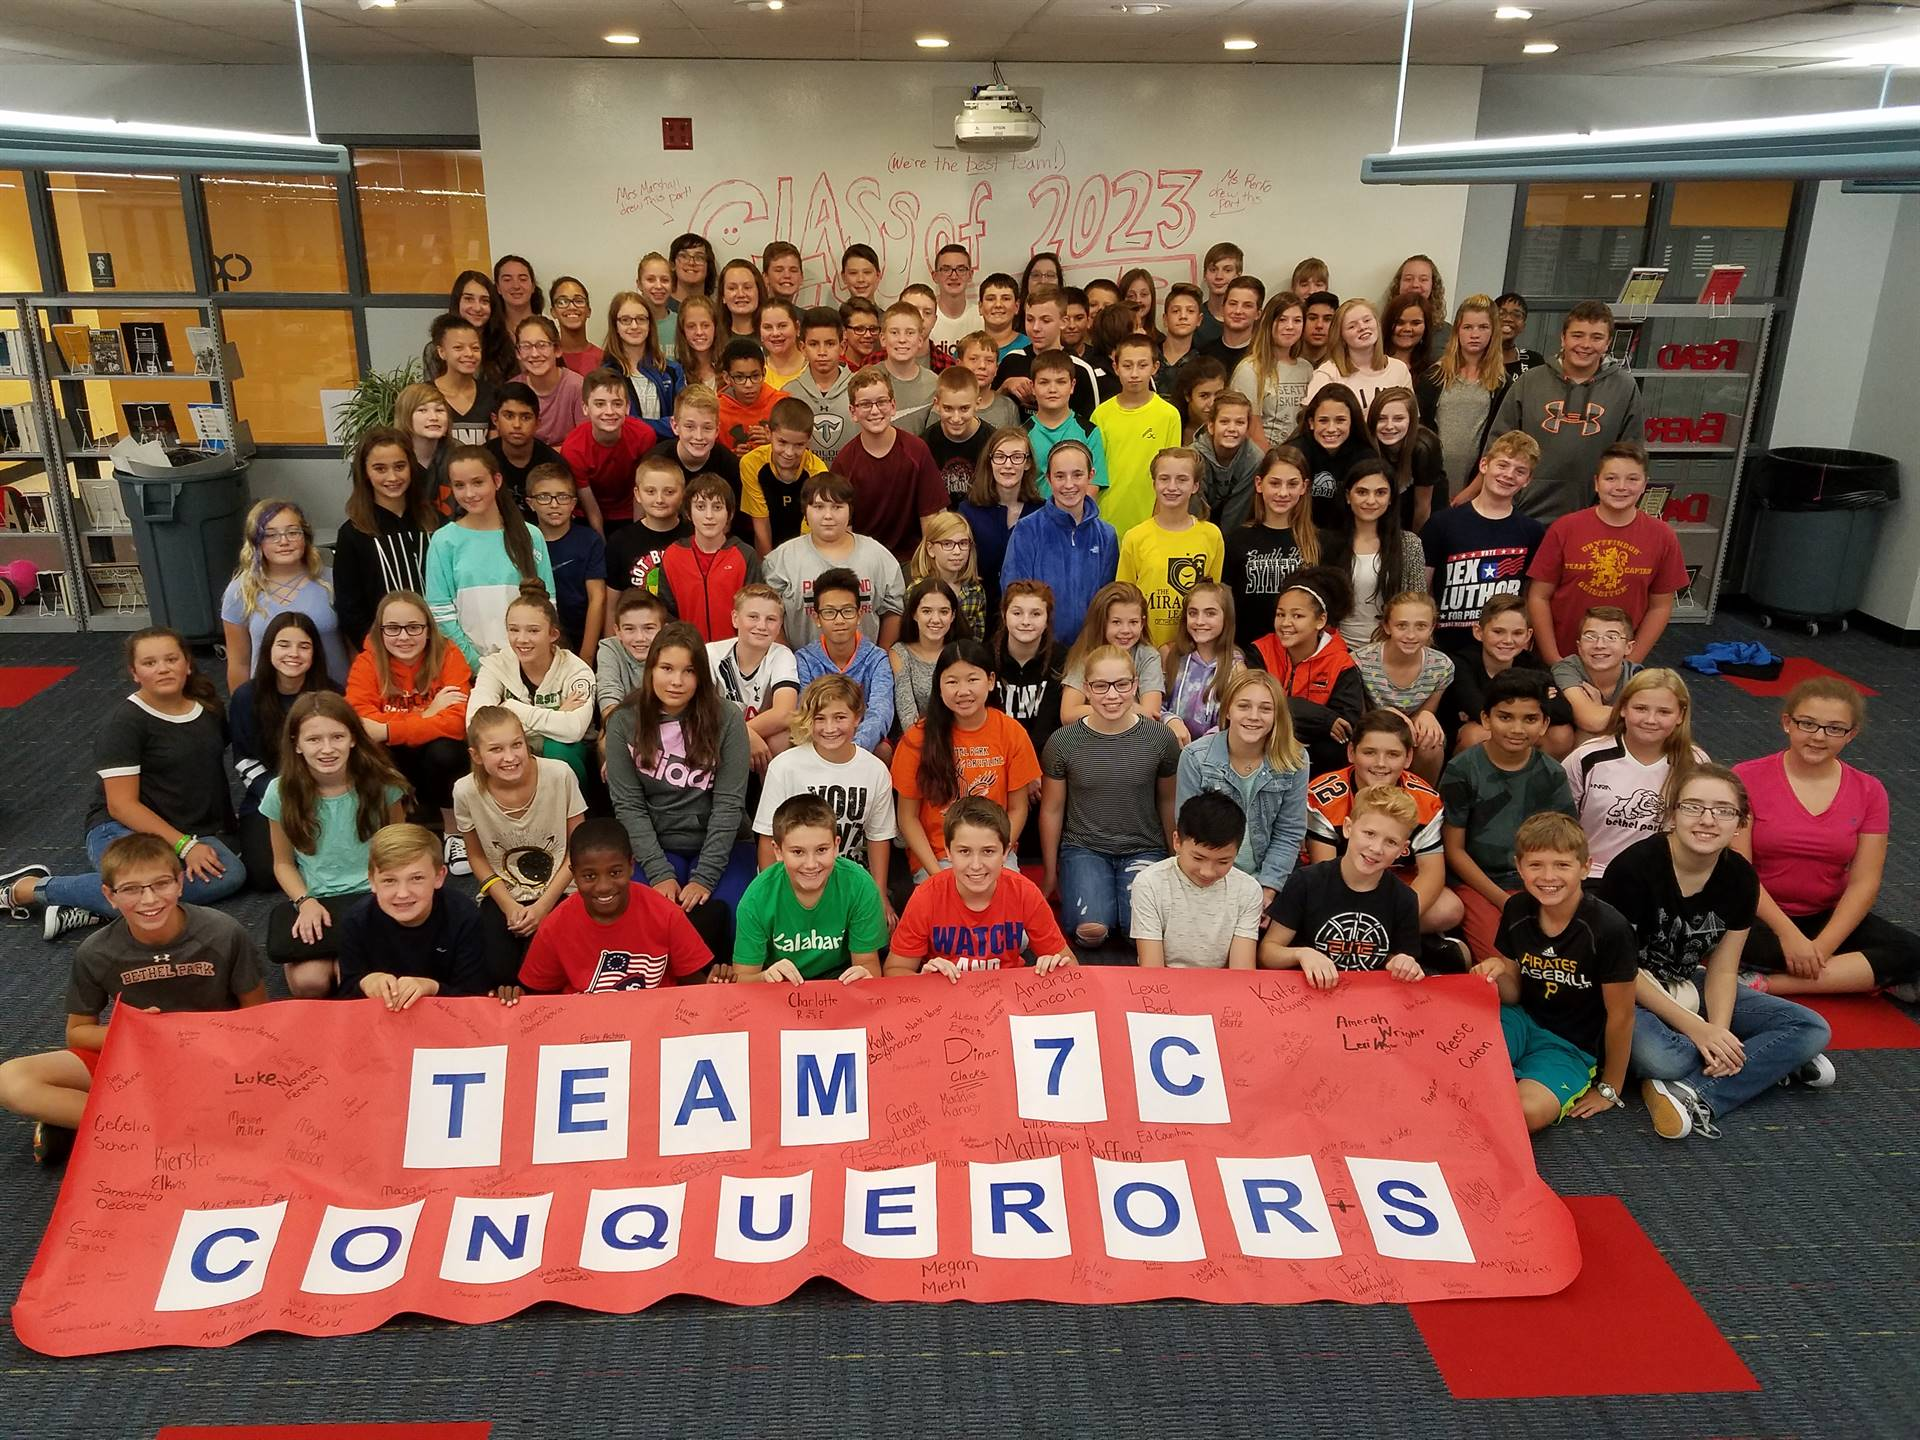 Team 7C and their team banner